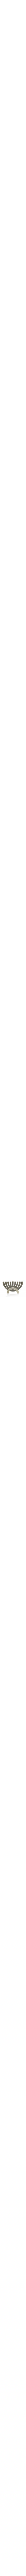 Colorful anodized aluminum with hammering Best selling Anodized aluminum reversible Menorah candlesticks in the color of your choice